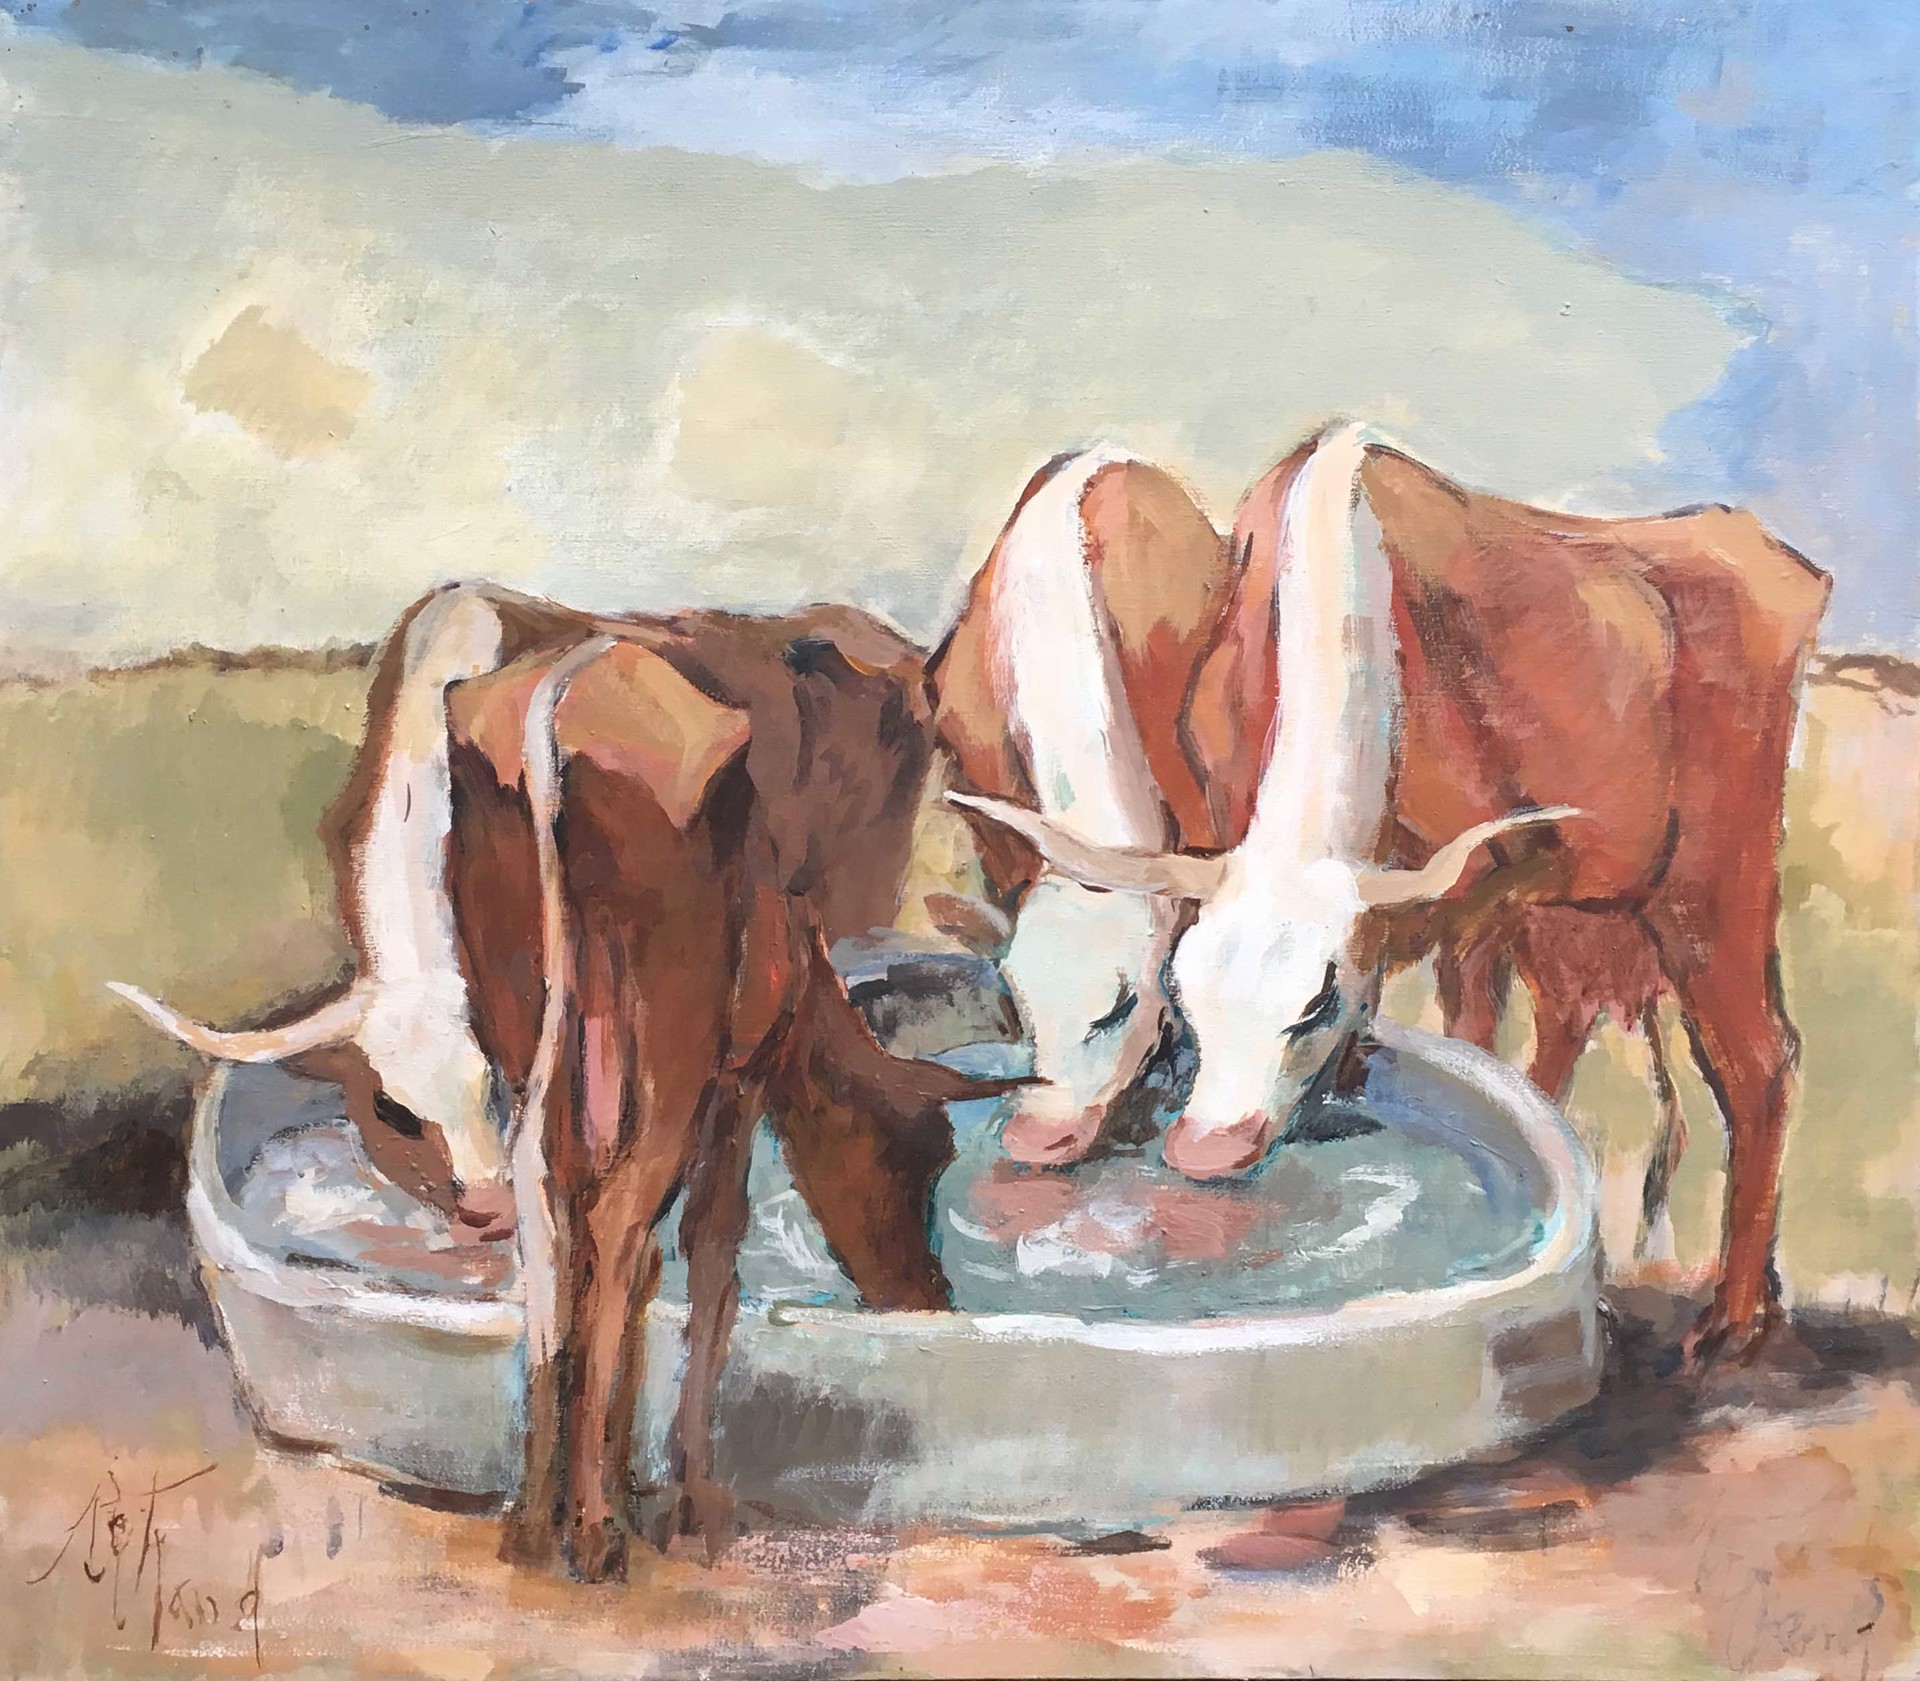 The Water Trough (Thirsty Cows) by Emily Rutland